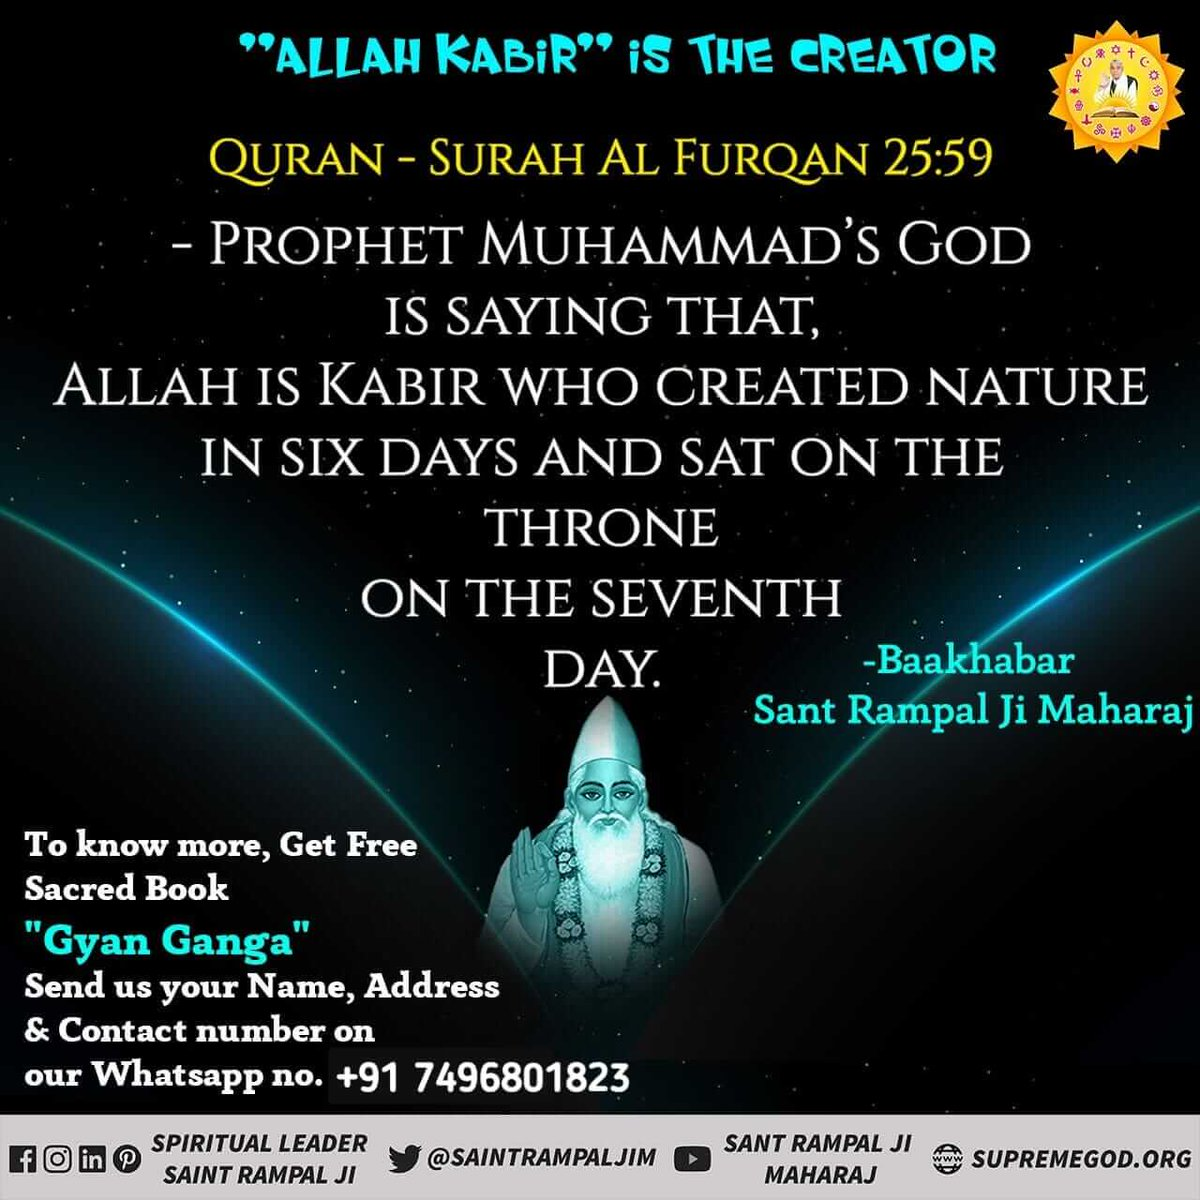 #fridaymorning  Allha kabir is the creator of all universes in Holy Quran ,Veda & bible . For knowing more Download & read precious (free) Book  Gyaan Ganga  #सत_भक्ति_संदेश  More  see sadhna TV 7:30pm daily @JivanPrajapati1 @SaintRampalJiM @Jassipetwar_inc @IYCWestBengal<br>http://pic.twitter.com/dbdlWFw1Ra